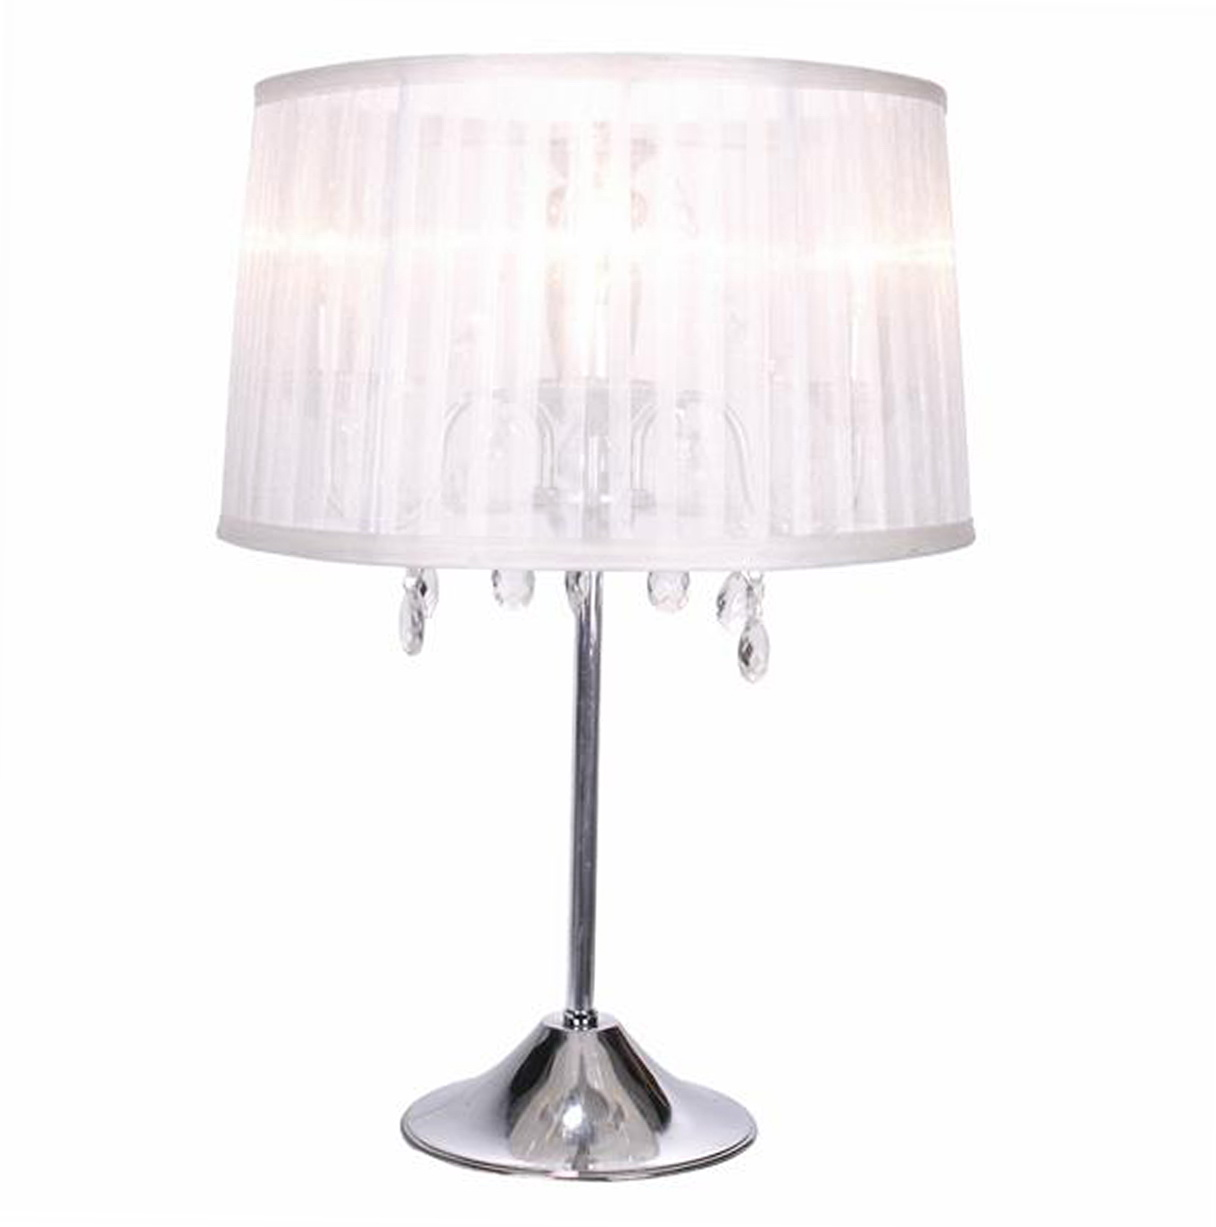 Chandelier Table Lamp Shades